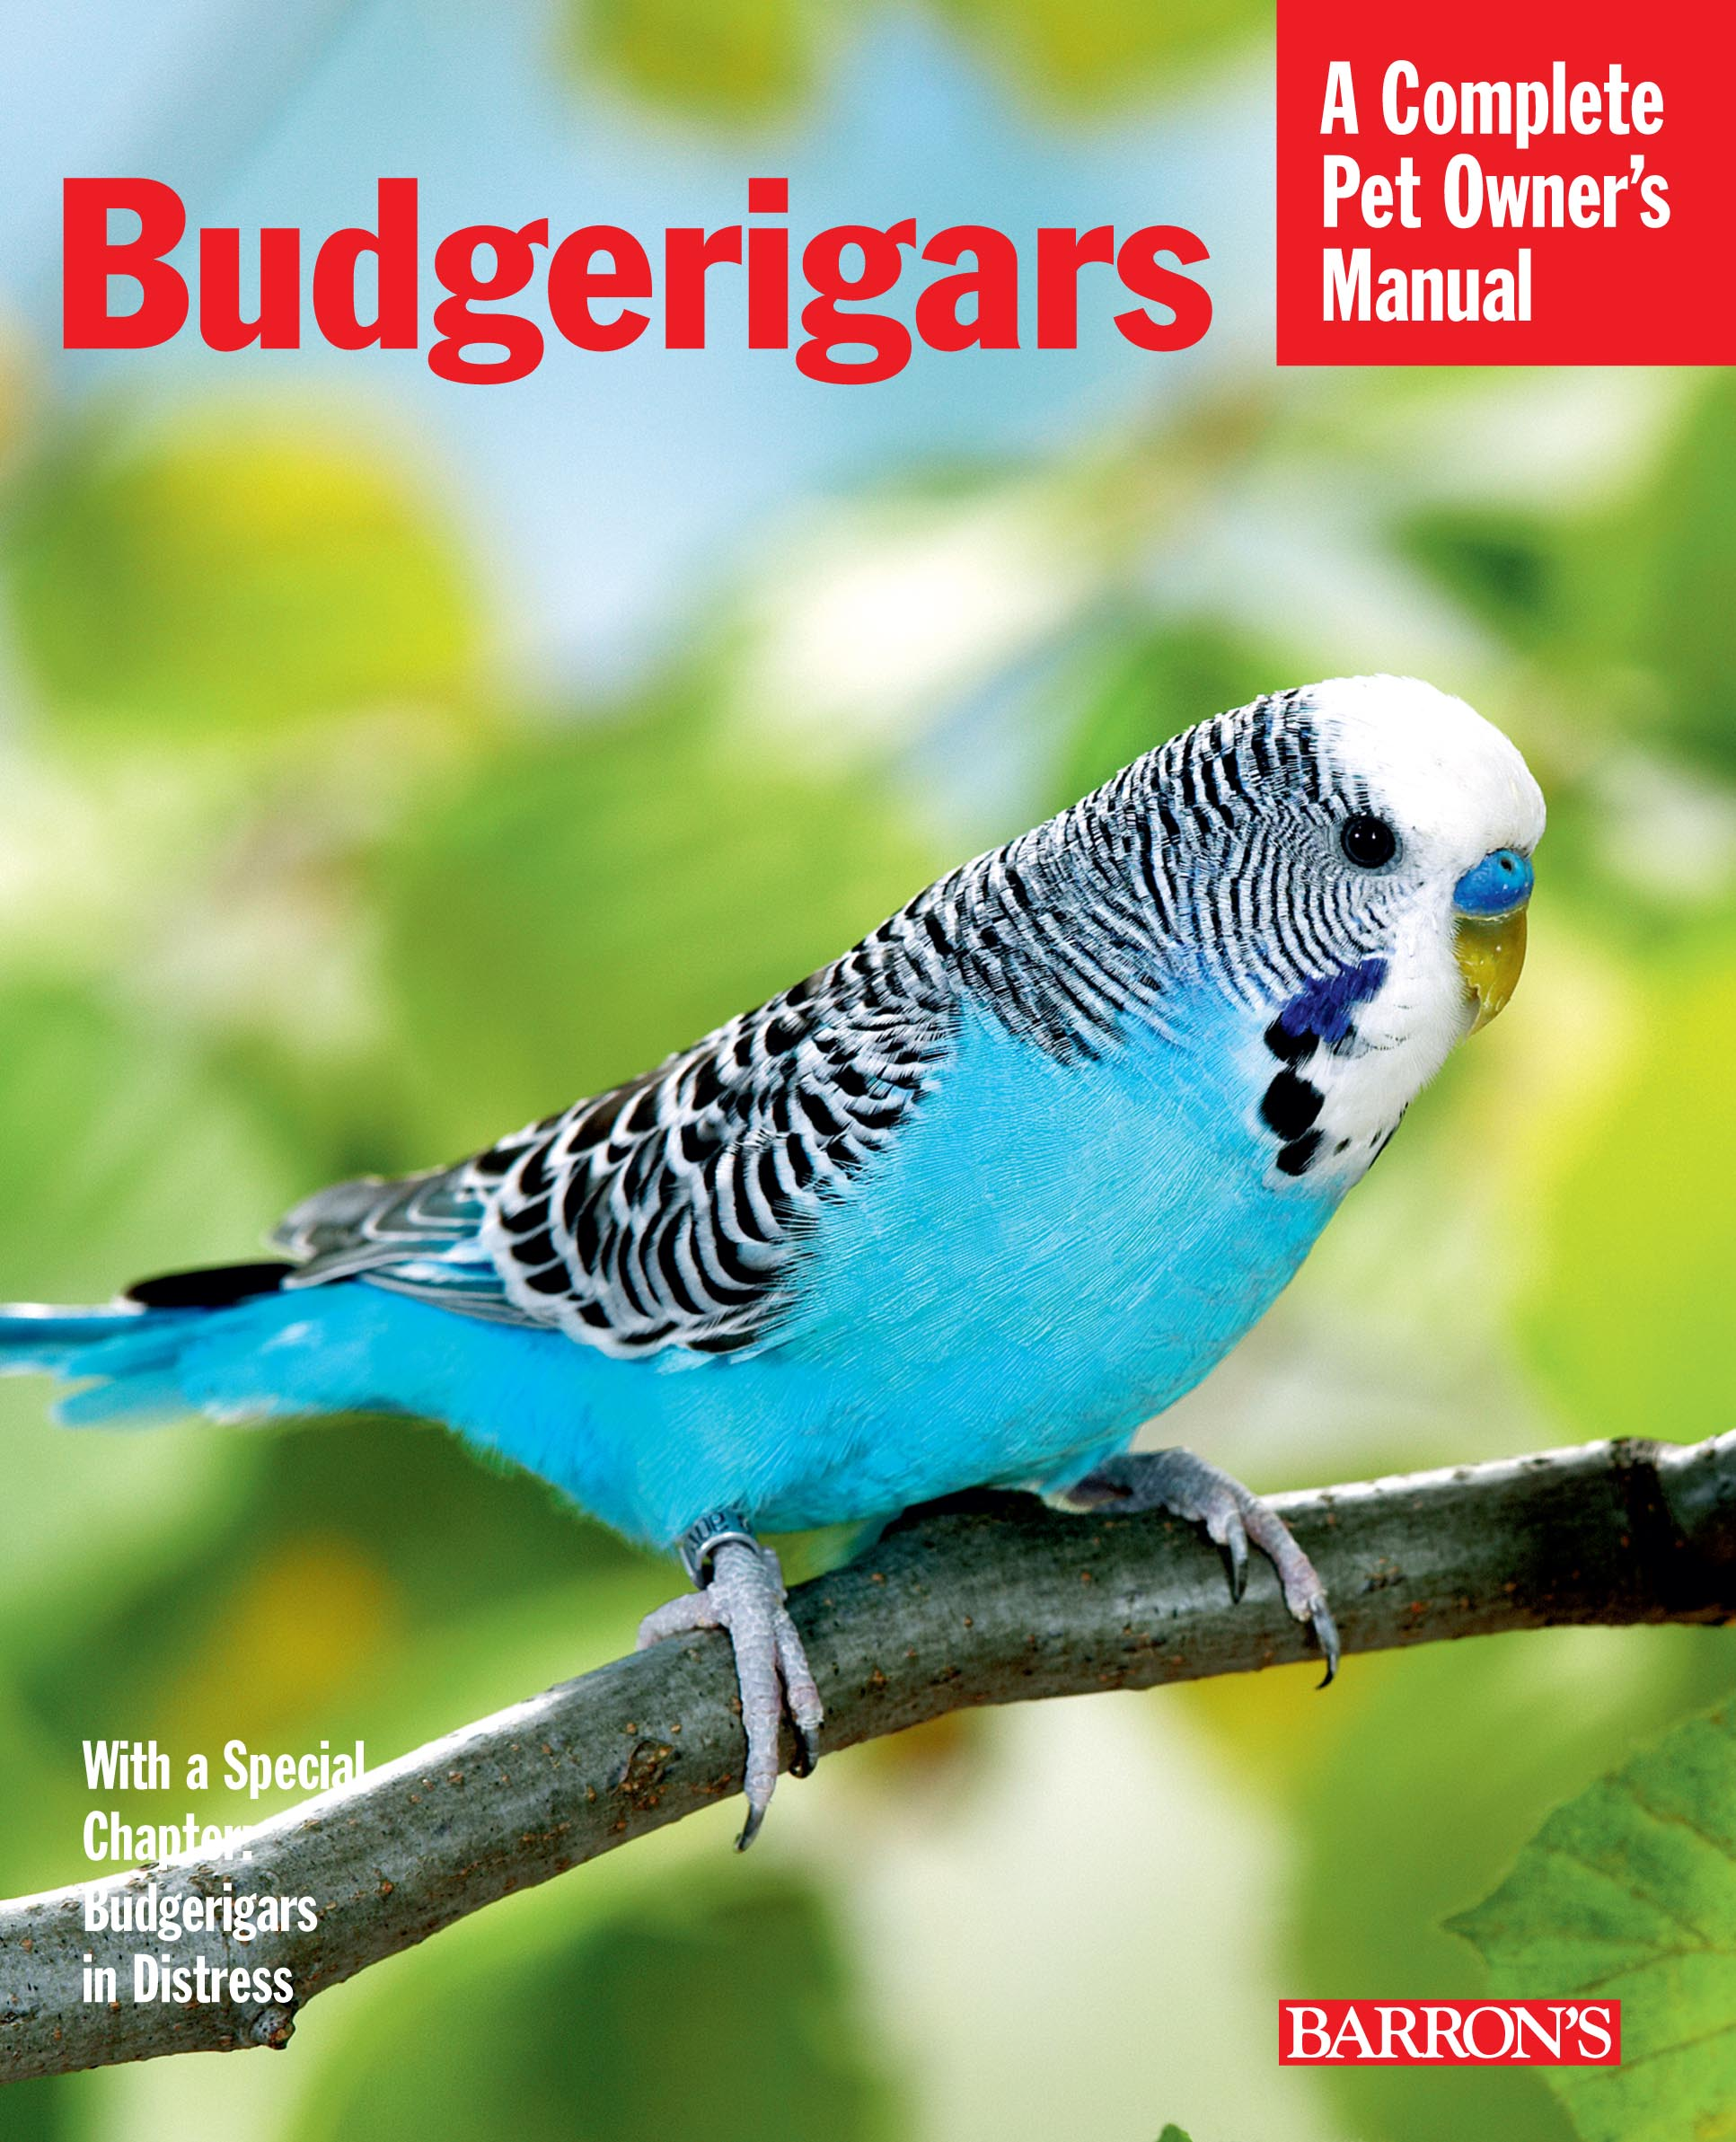 Budgerigars—A Complete Pet Owner's Manual